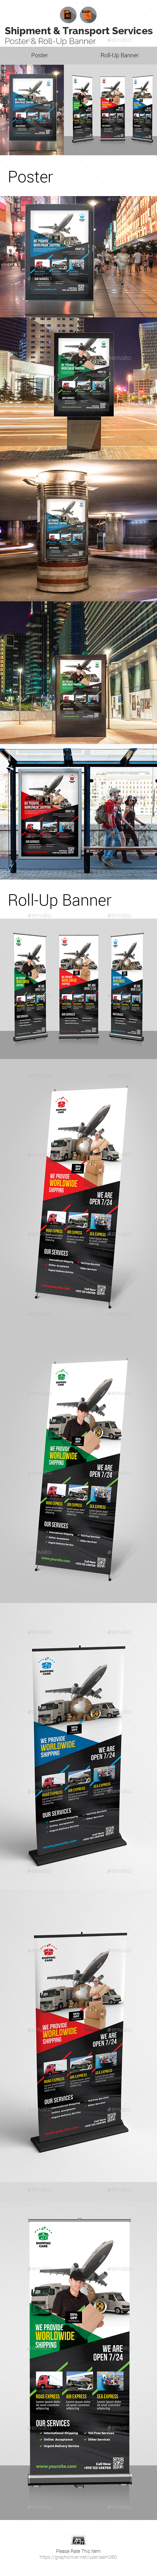 Delivery & Transport Services Signage - Signage Print Templates